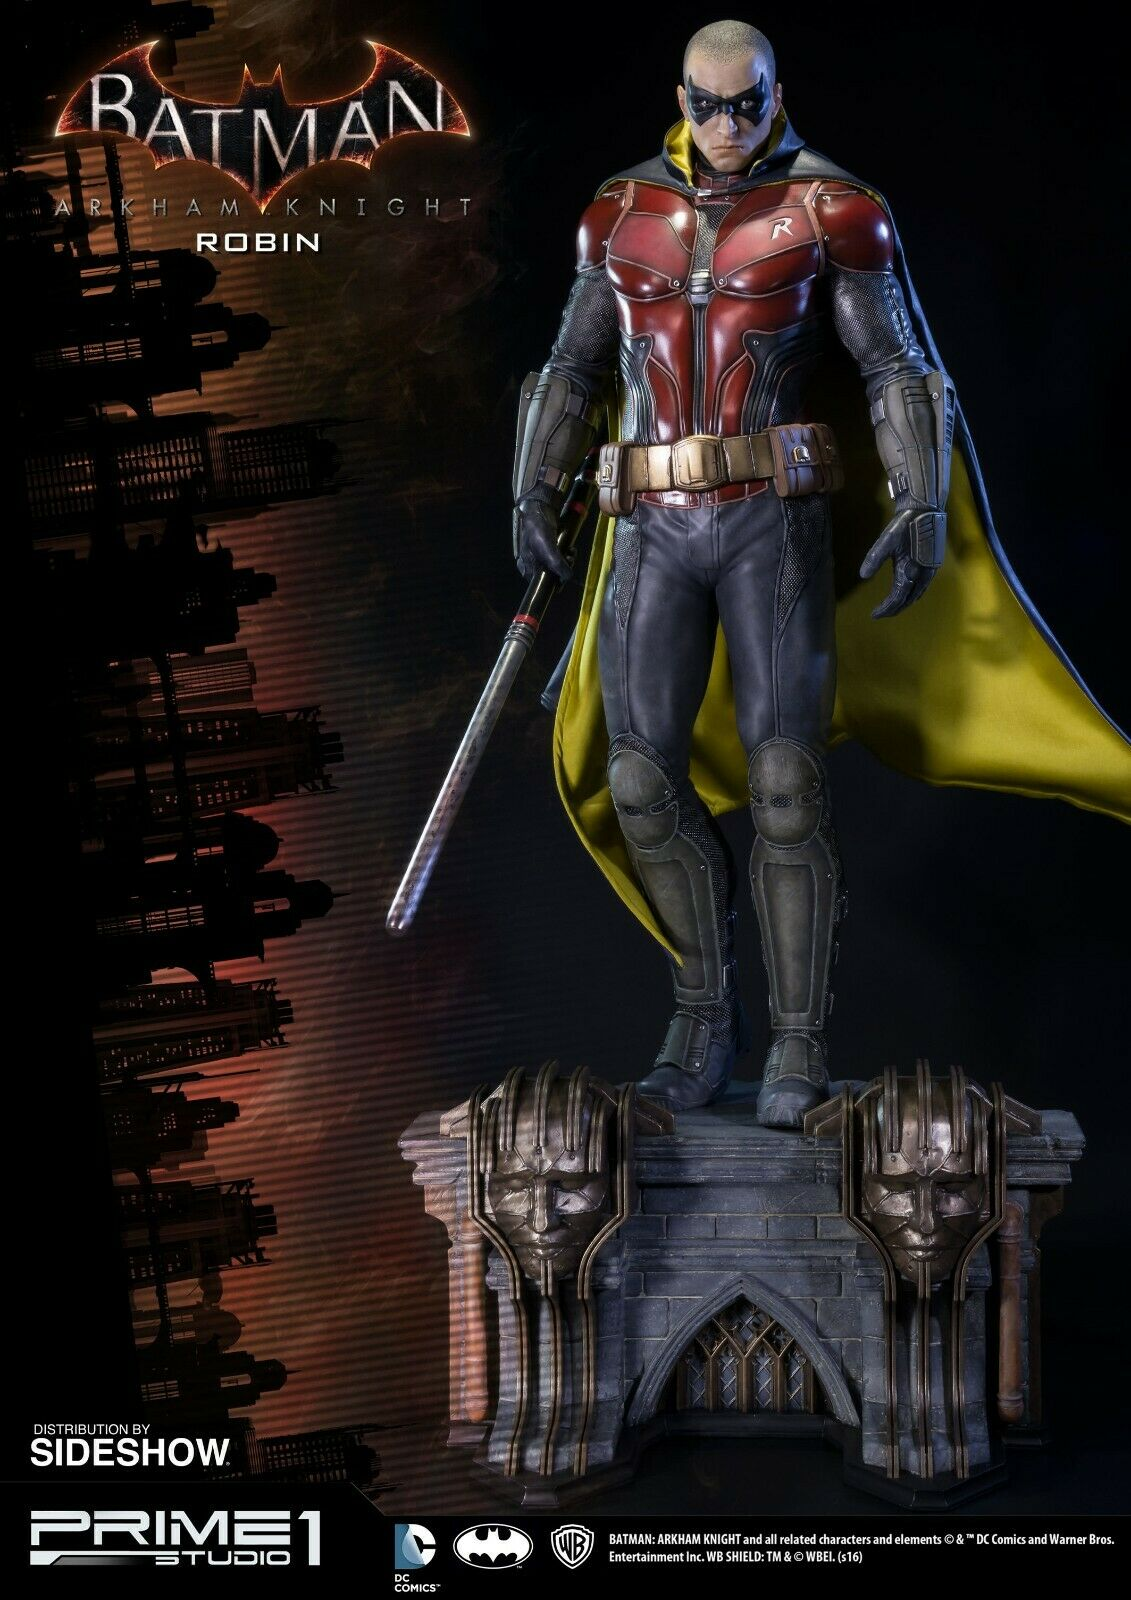 Prime 1 Studios Arkham Knight Robin EX edition statue Not Sideshow or XM